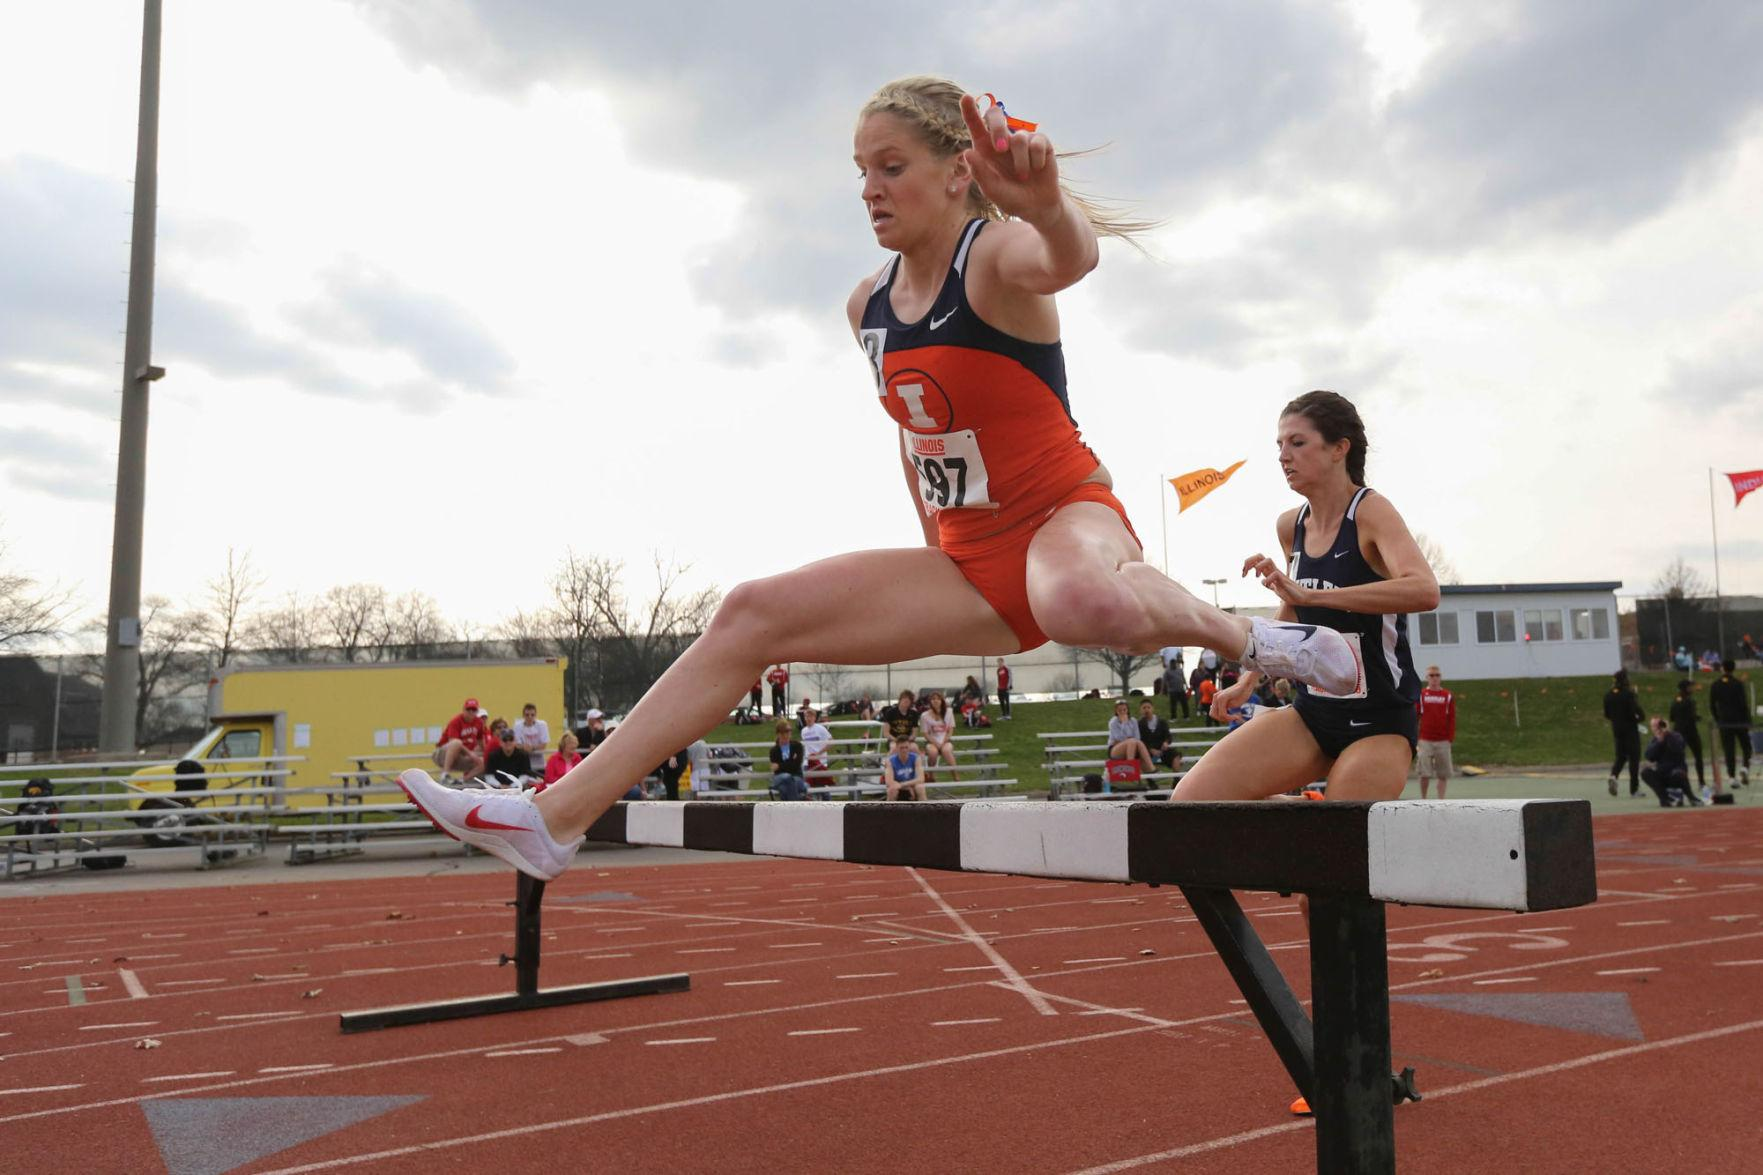 Illinois' Britten Petrey runs the 3000 meter Steeplechase during the Illinois Twilight Track and Field meet at Illinois Soccer and Track Stadium, on Saturday, April 12, 2014.